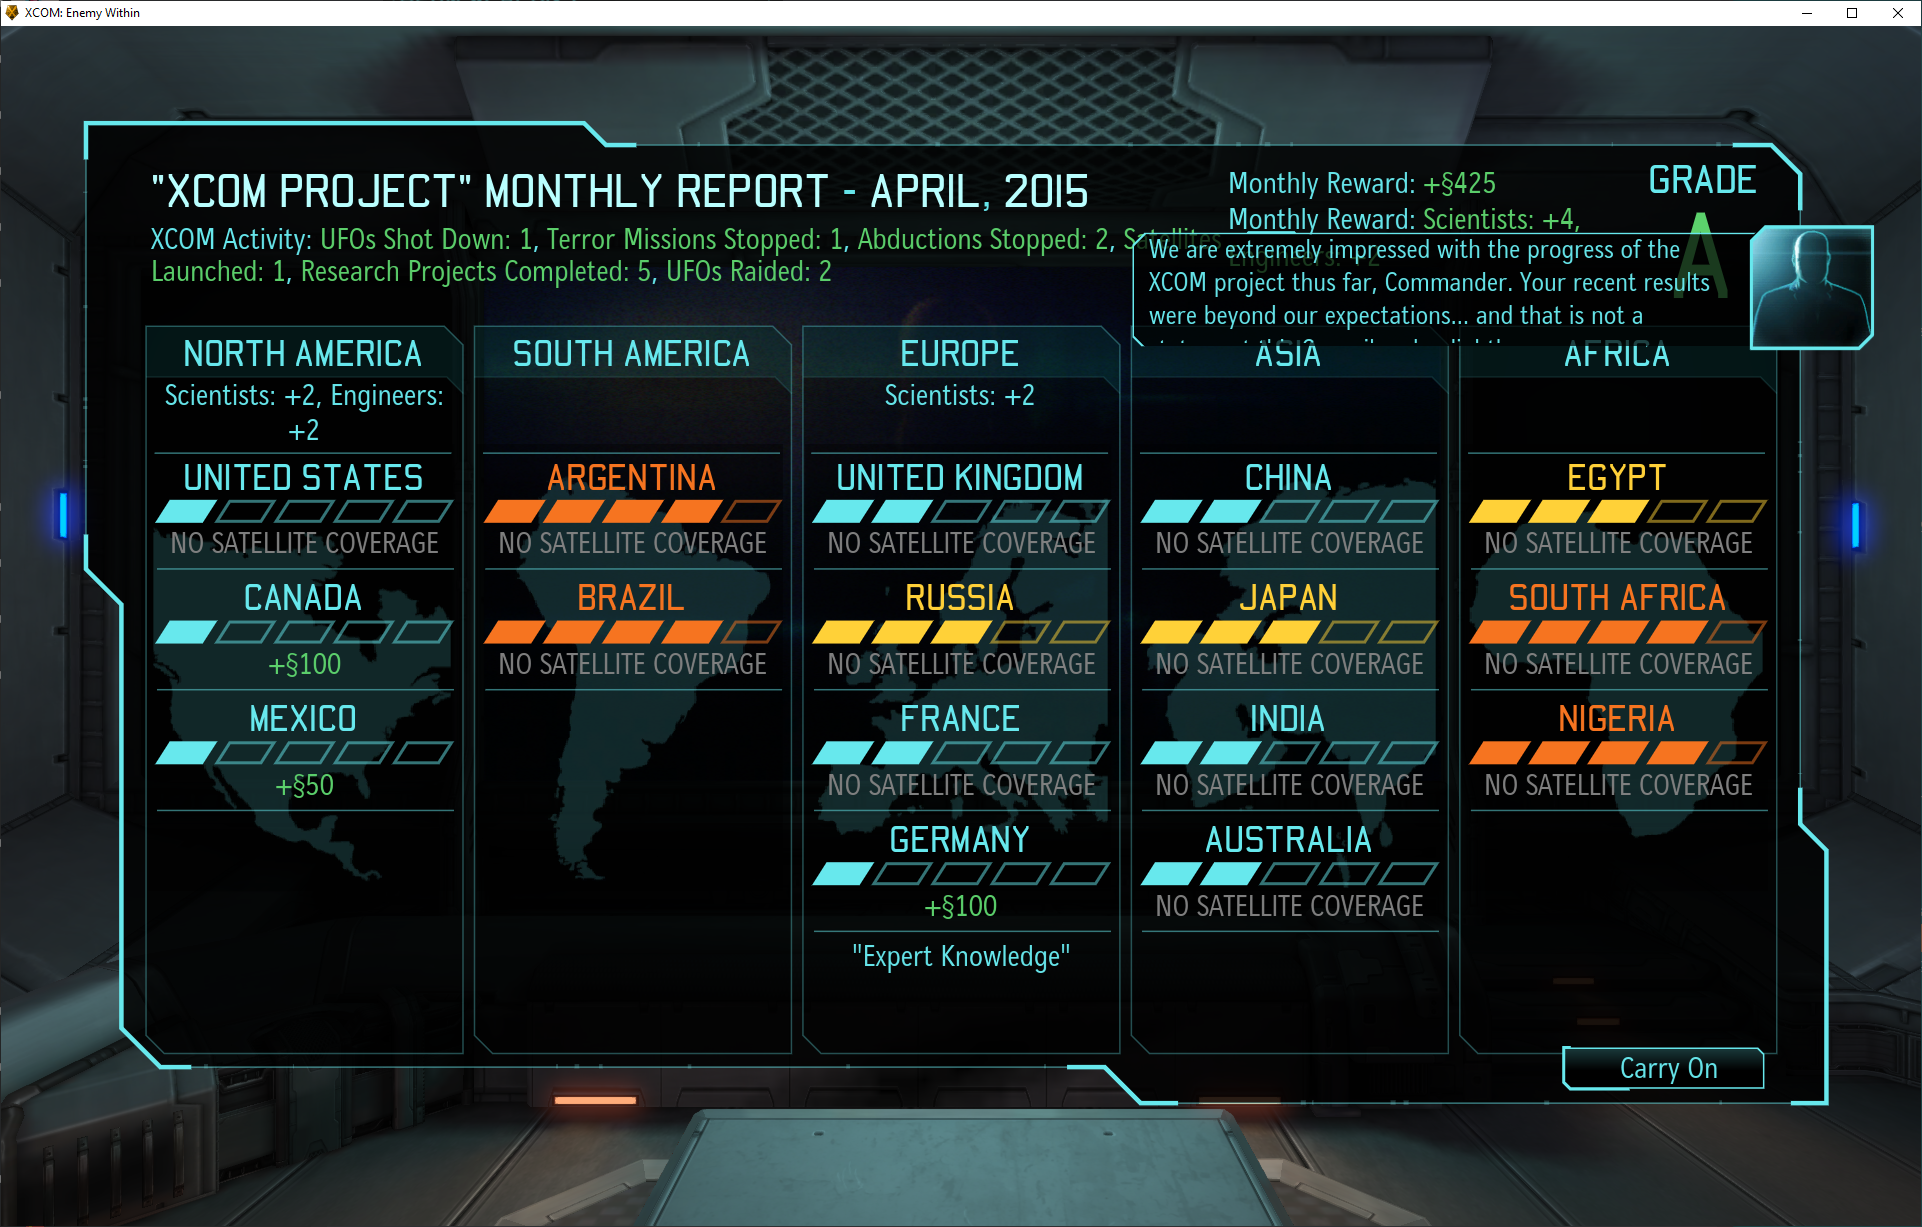 March Report